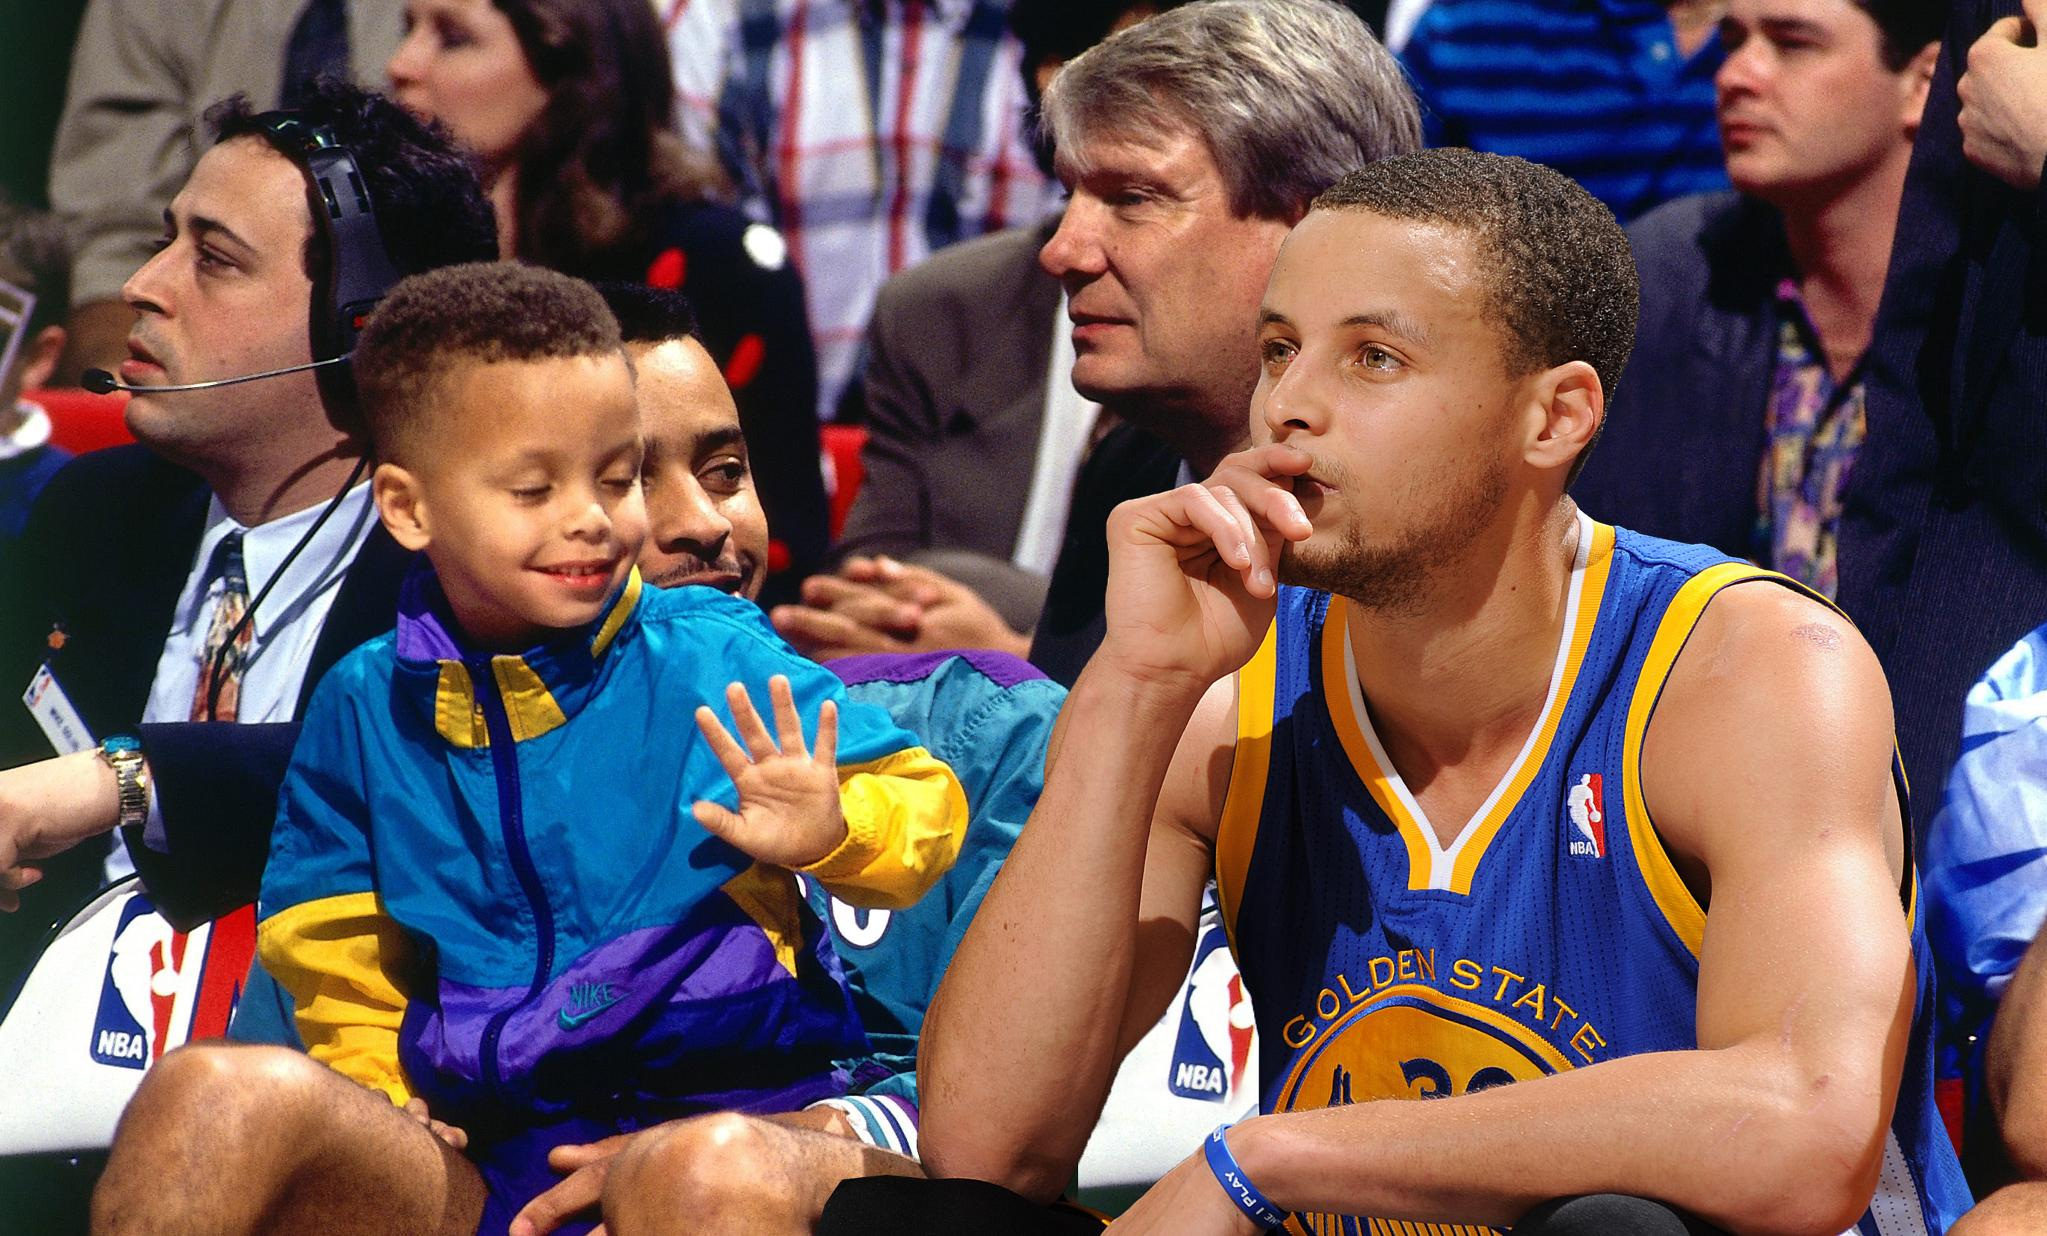 Steph Curry is turning 30. He's come a long way from a little kid watching his dad play in the NBA. https://t.co/8A1ZPQmWyN